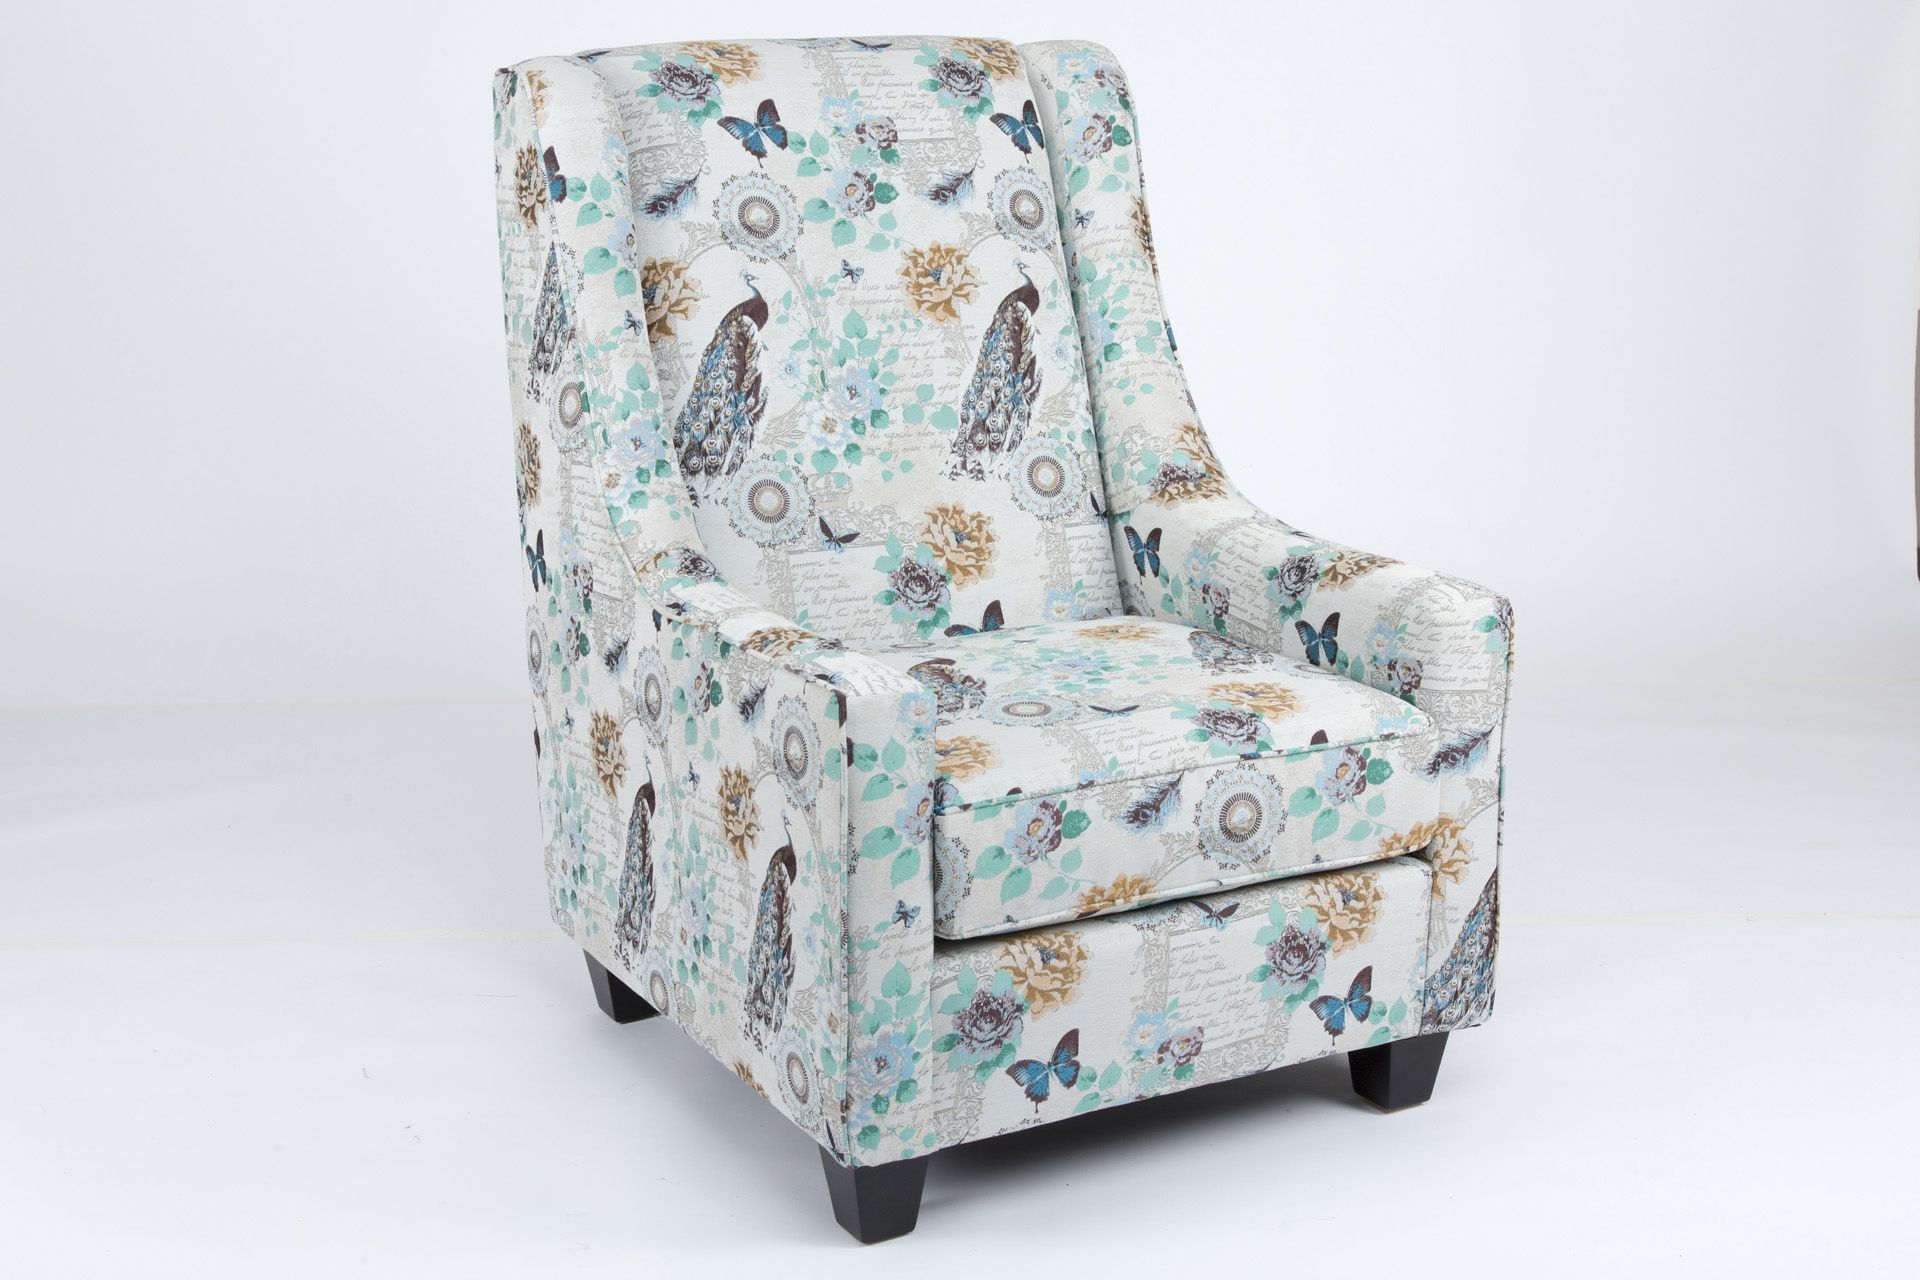 Canadian Made Printed Fabric 407 Upholstered Accent Chair